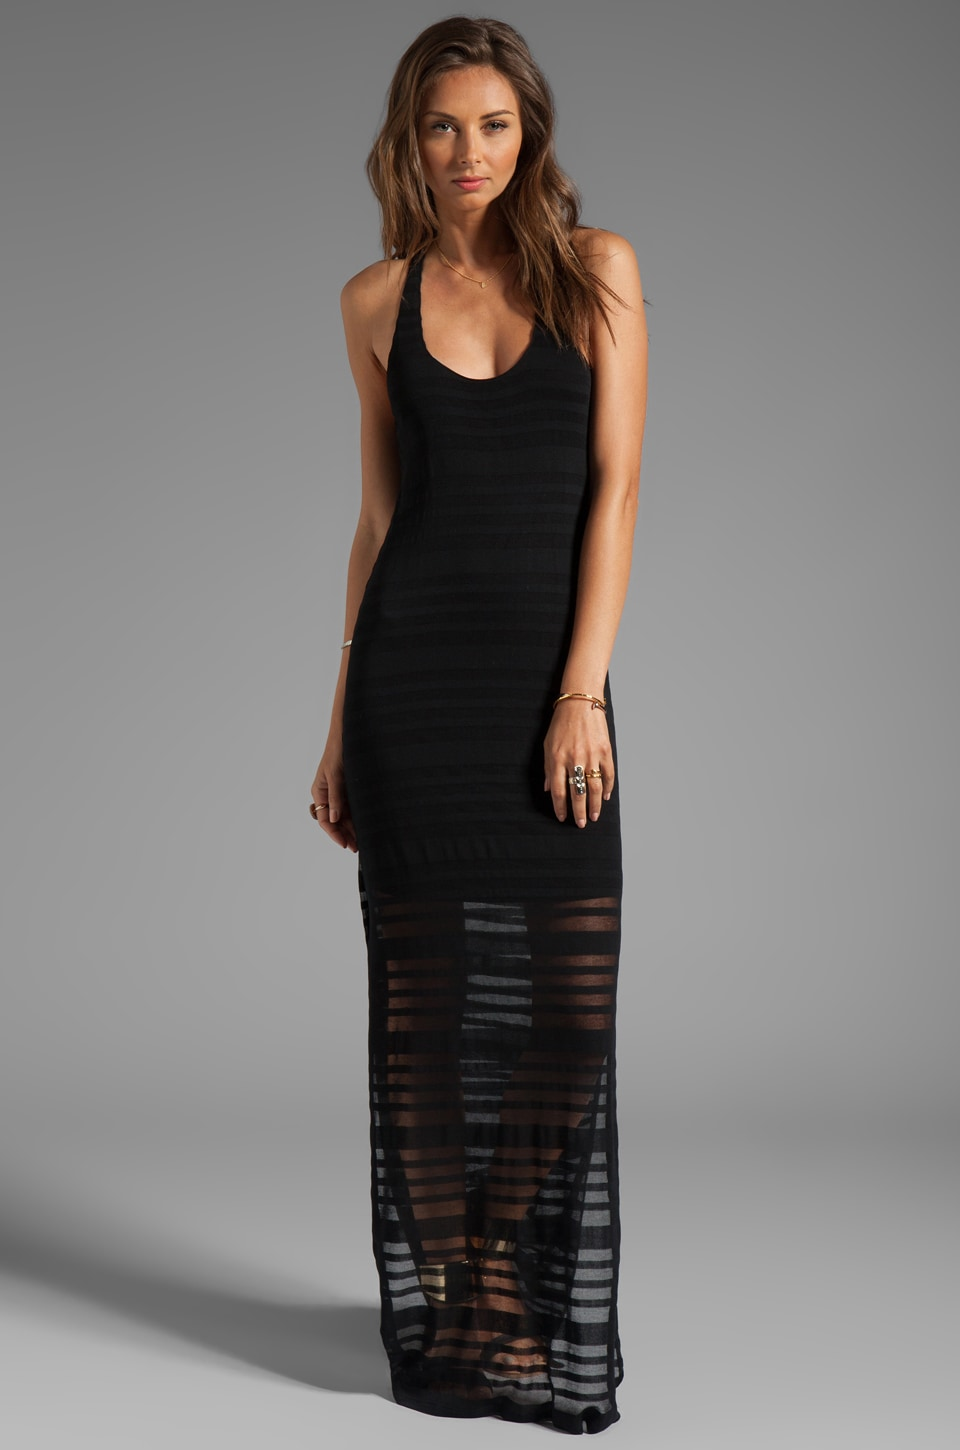 Rory Beca Fluery Side Slit Gown in Black